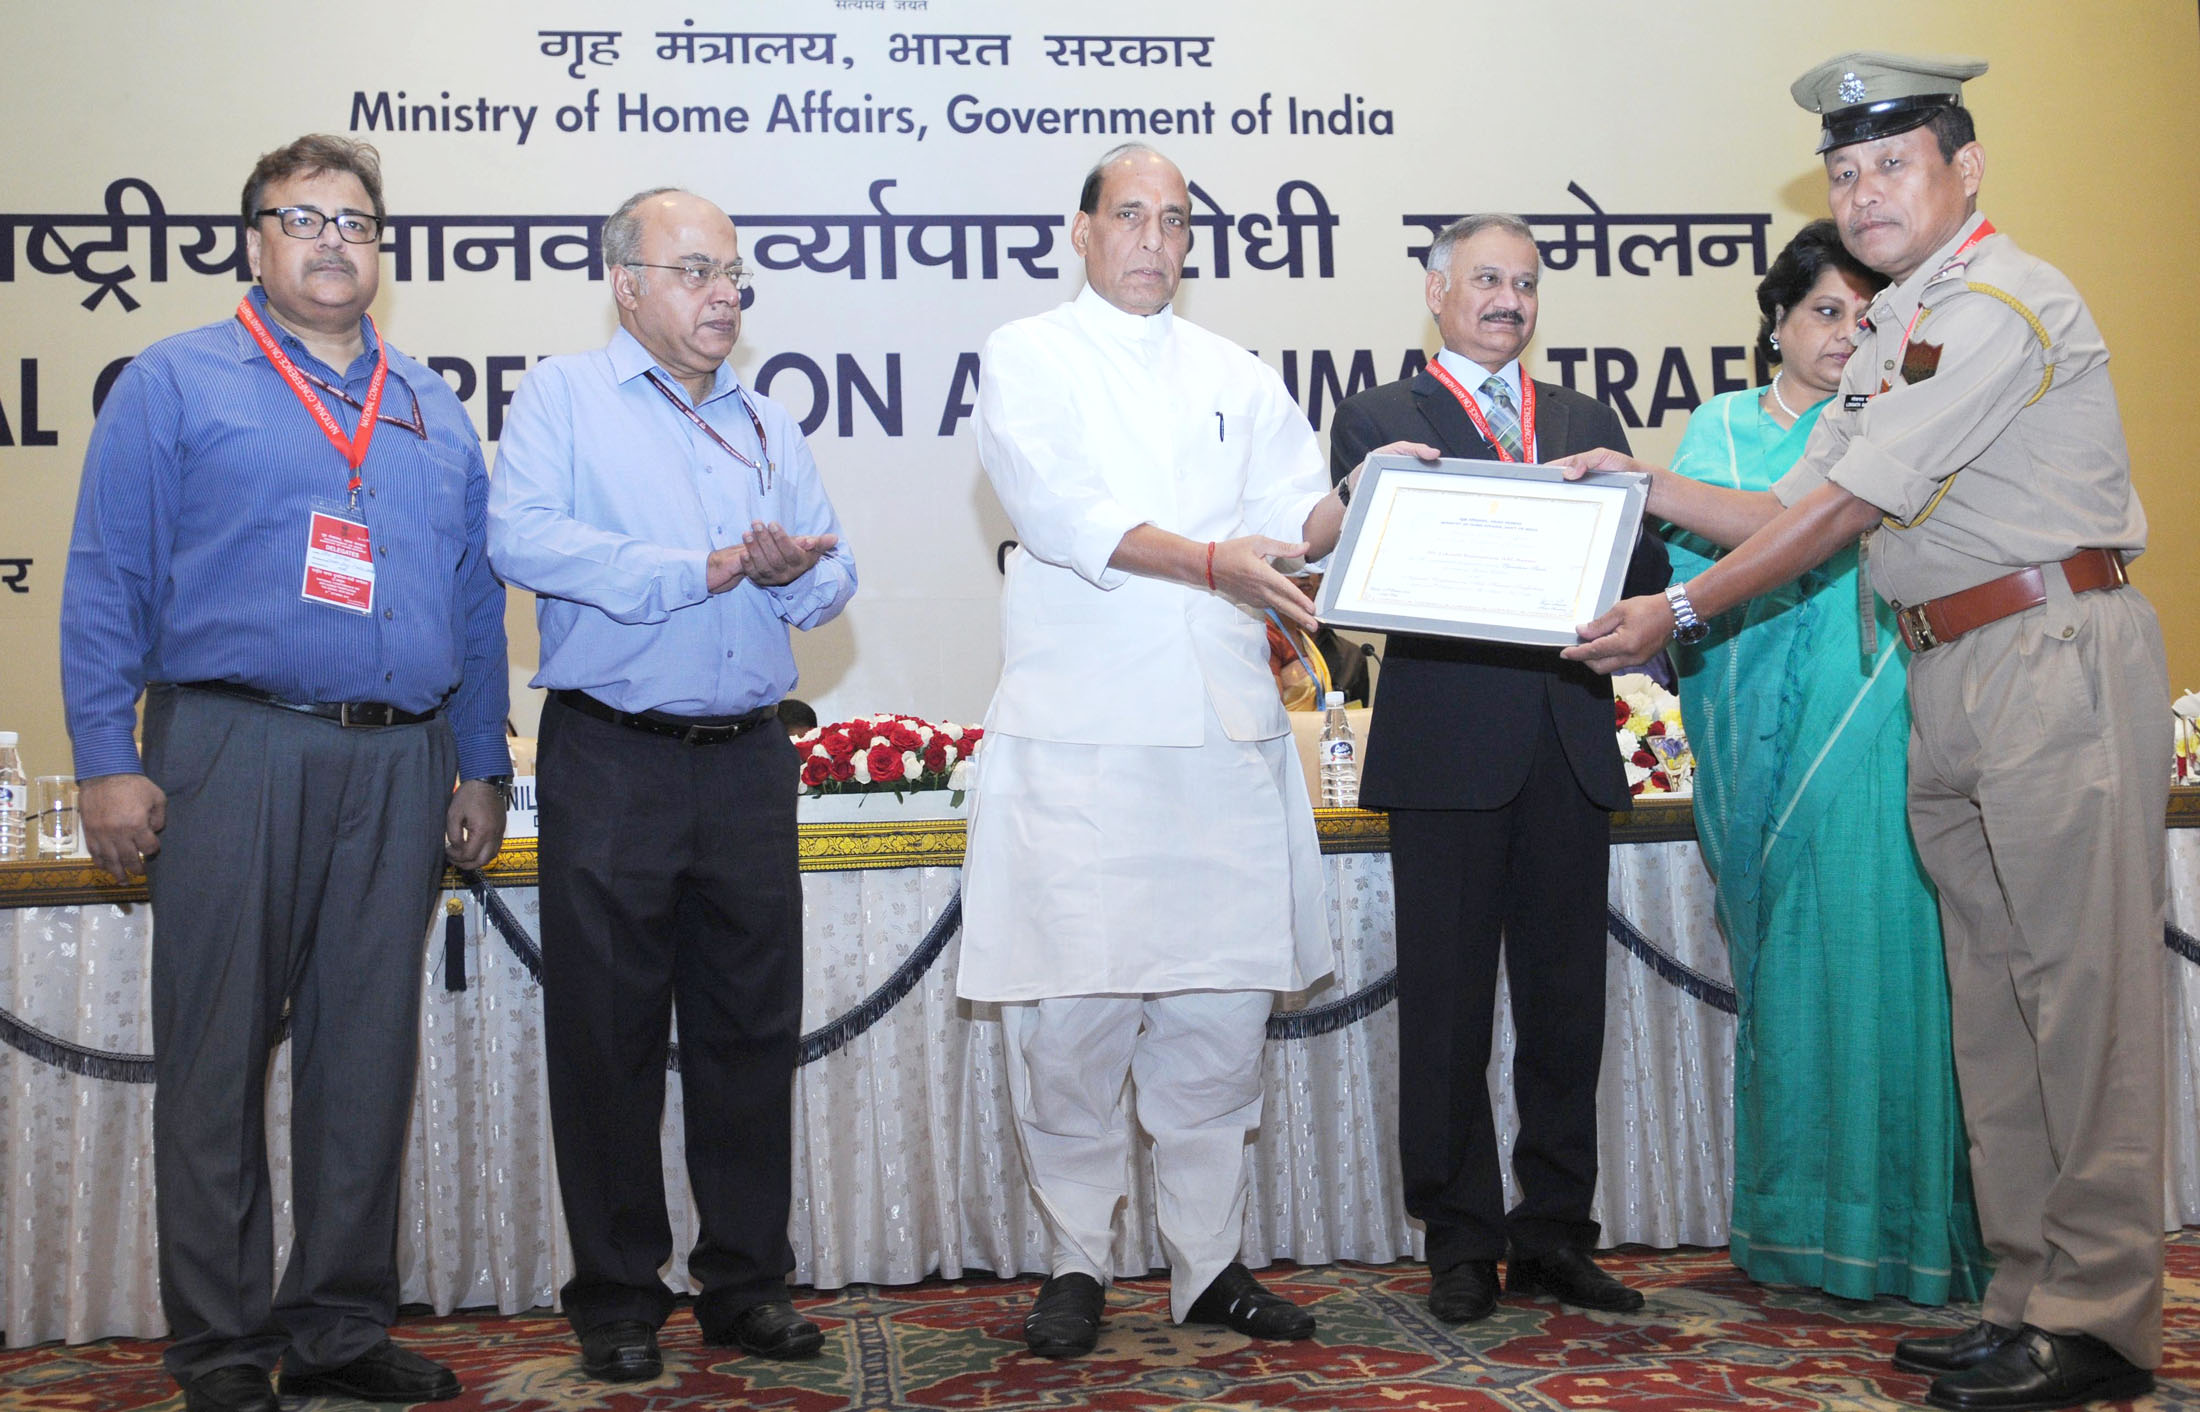 The Union Home Minister, Shri Rajnath Singh presented the certificates to top performers of 'Operation Smile', at the inauguration of the National Conference on Anti Human Trafficking, in New Delhi on October 07, 2015. The Secretary, Ministry of Women and Child Development, Shri V. Somasundaran and the Director, CBI, Shri Anil Kumar Sinha are also seen.